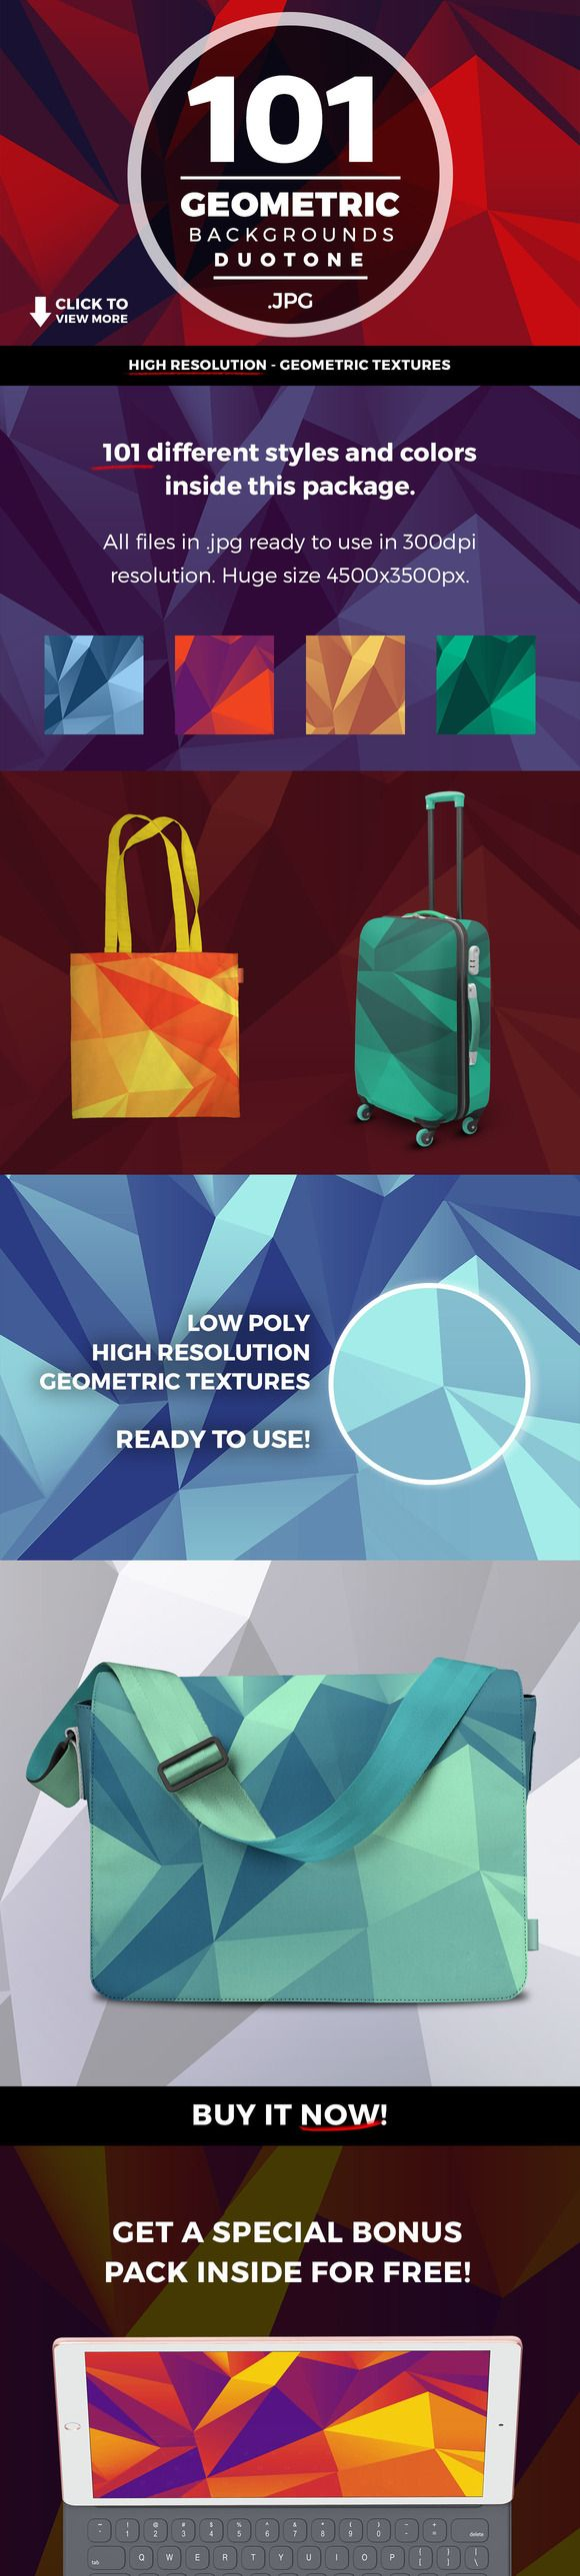 Geometric Triangle Backgrounds 101+ by caiocall on @creativemarket